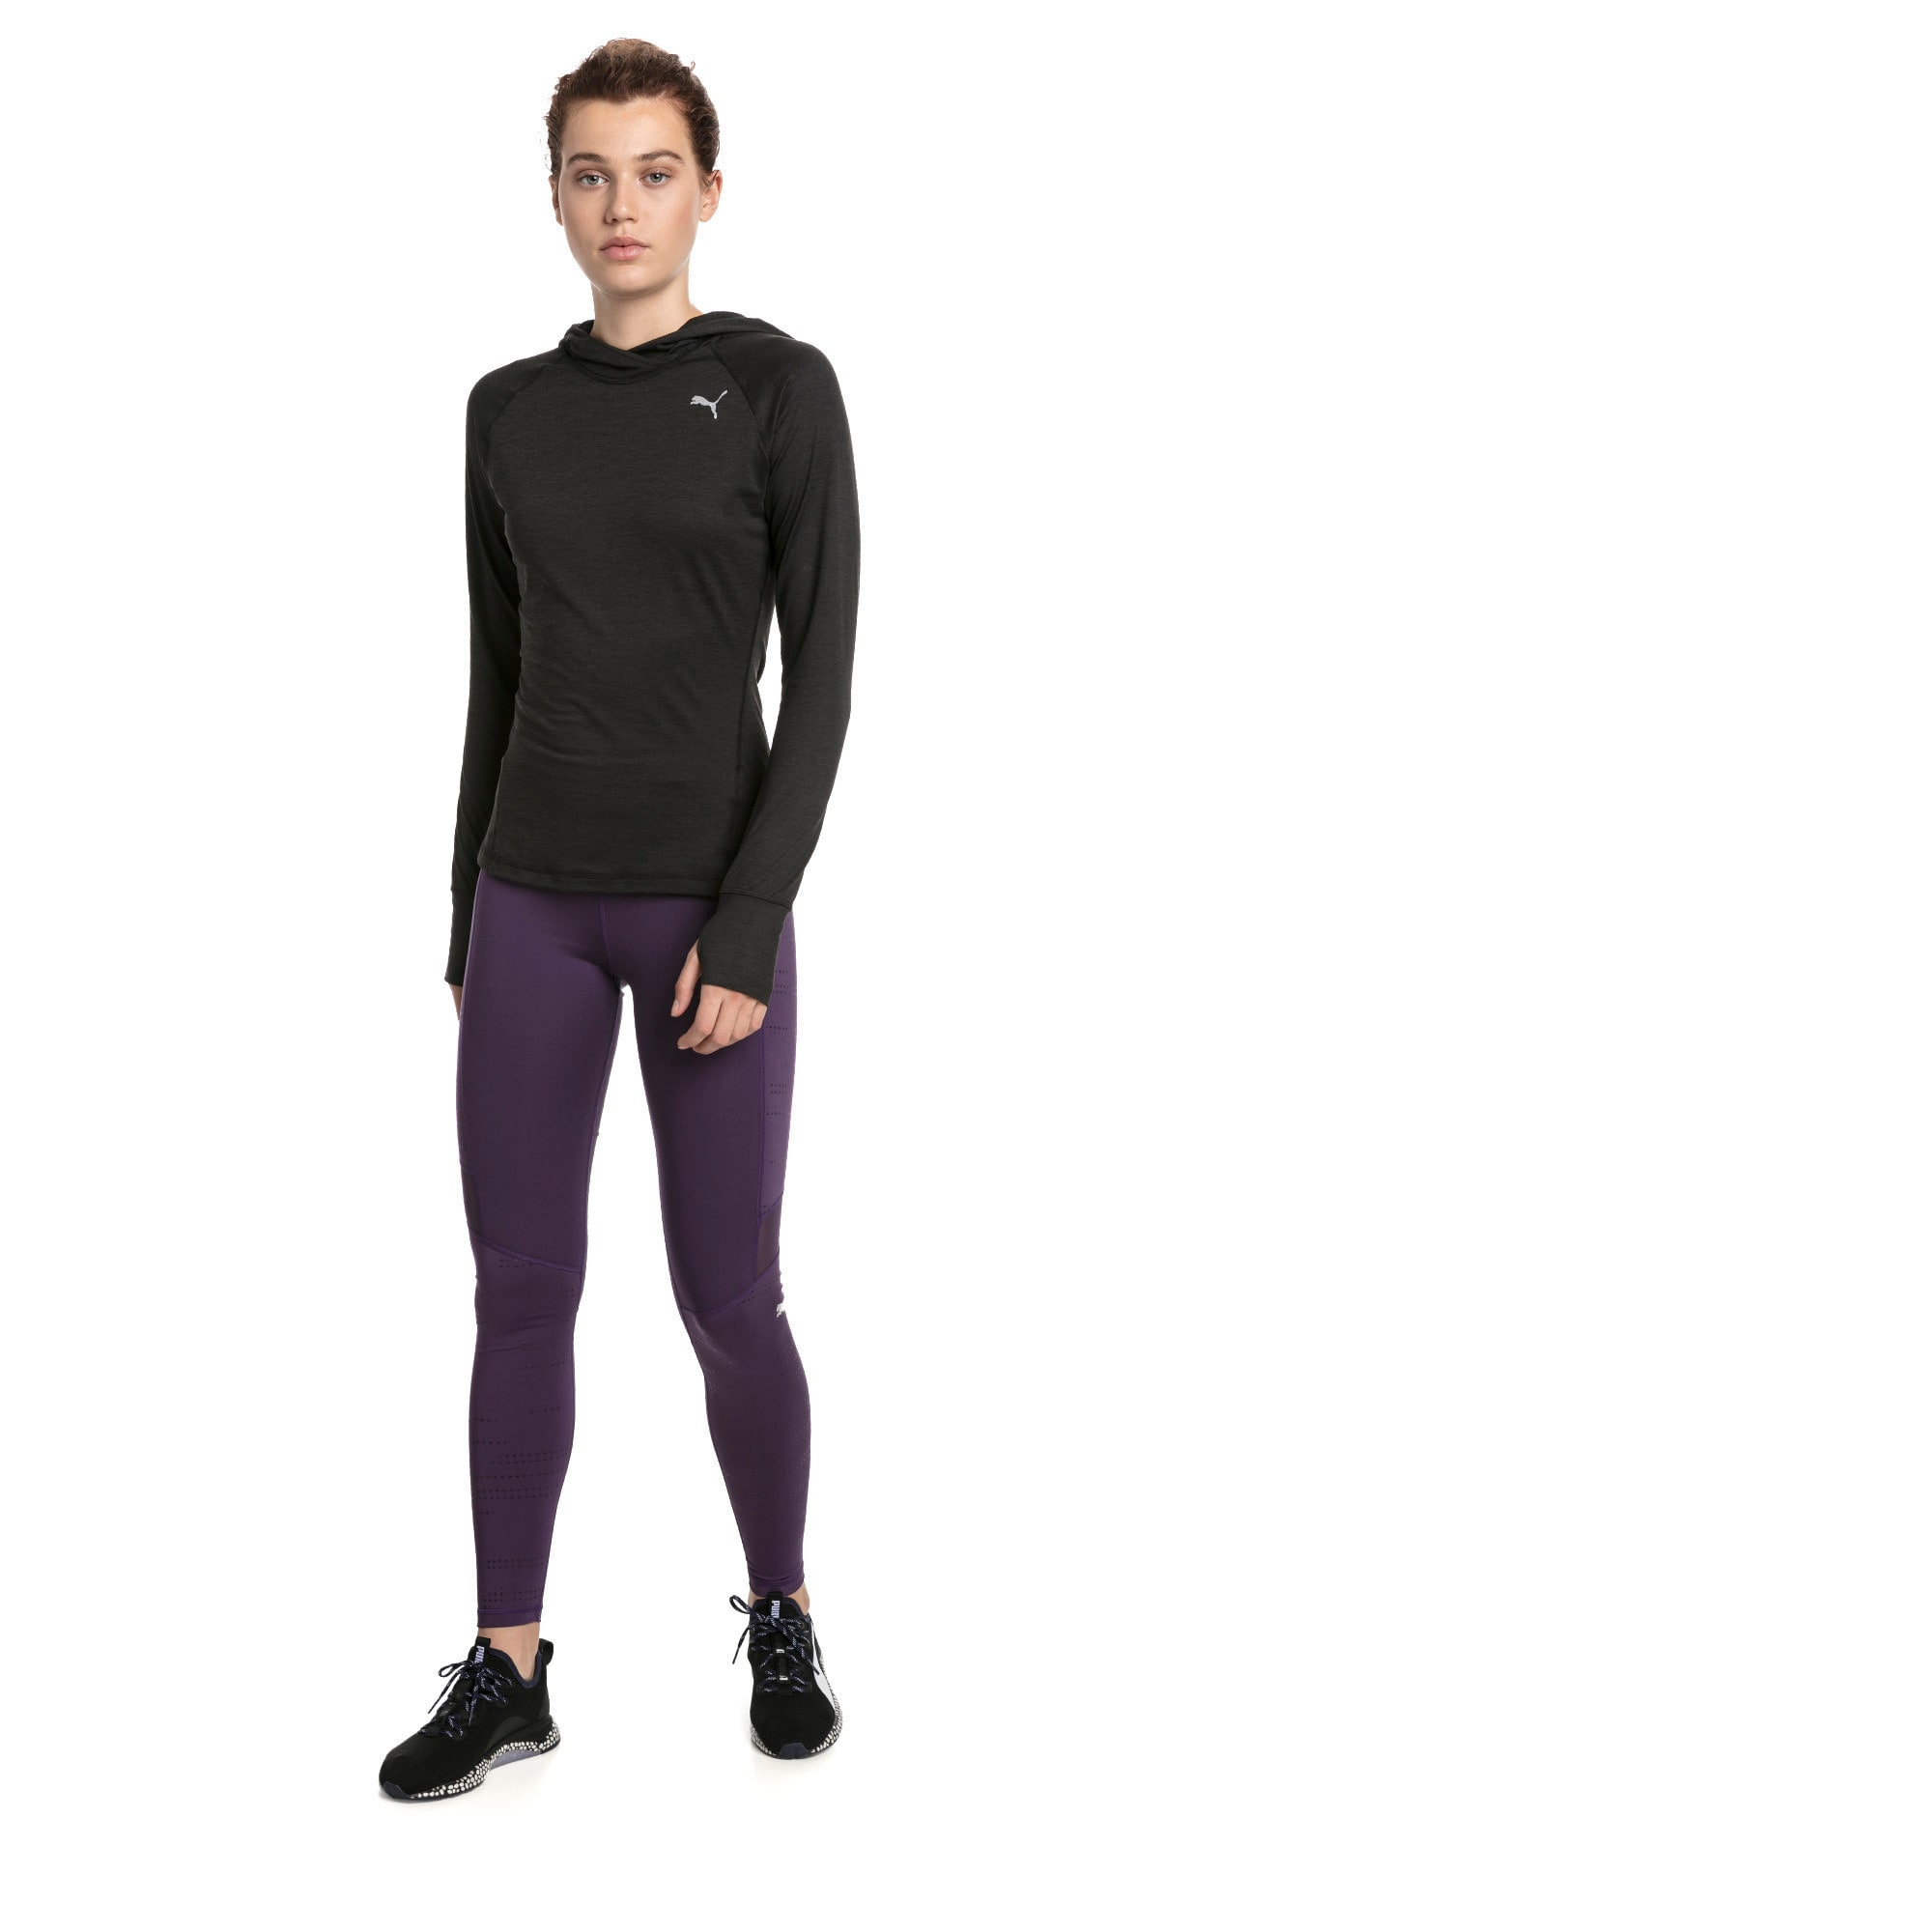 Thumbnail 4 of Ignite Women's Running Leggings, Indigo, medium-IND